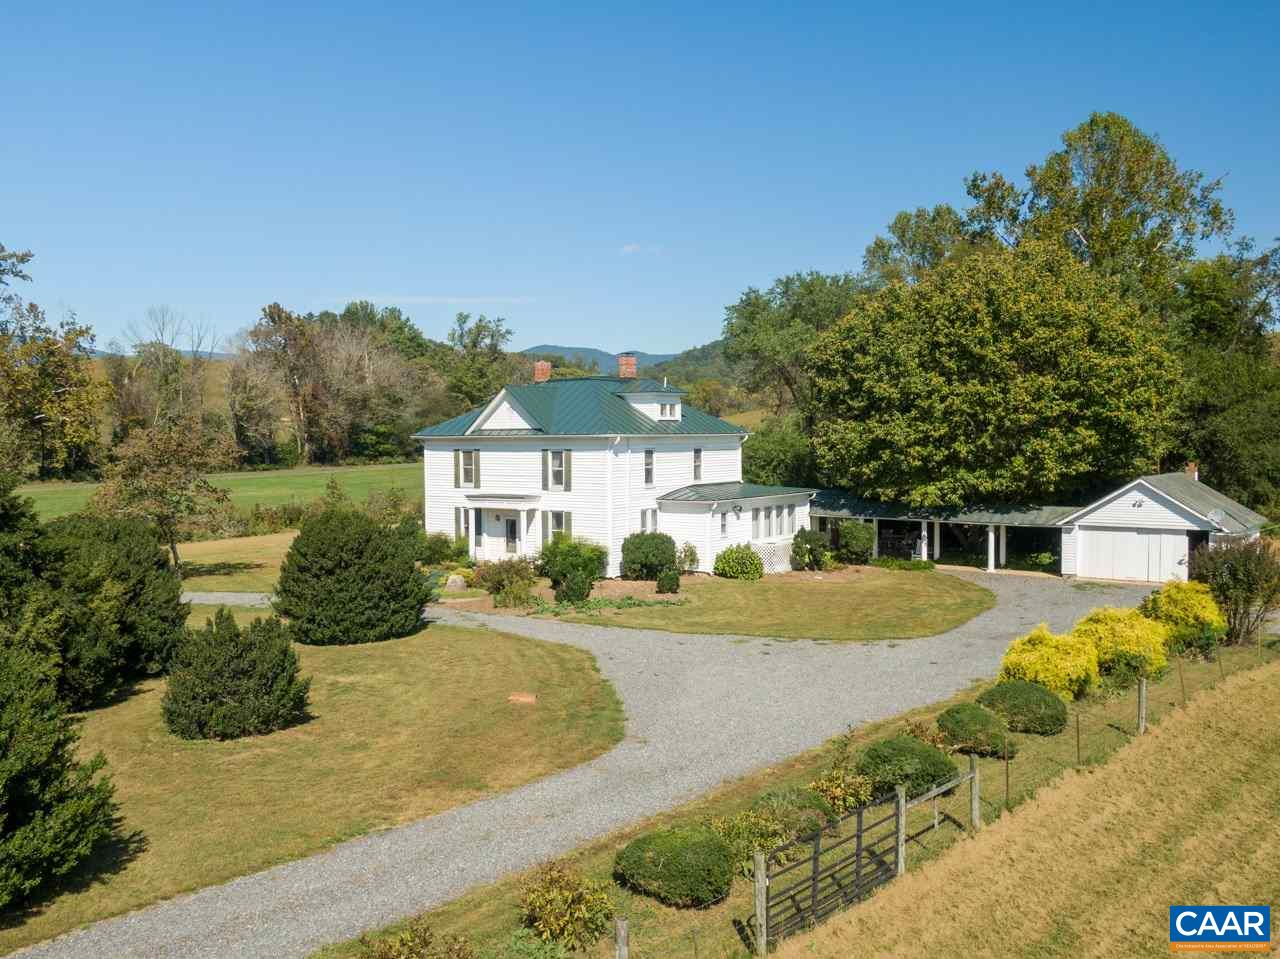 home for sale , MLS #588894, 1212 Old Blue Ridge Tpke